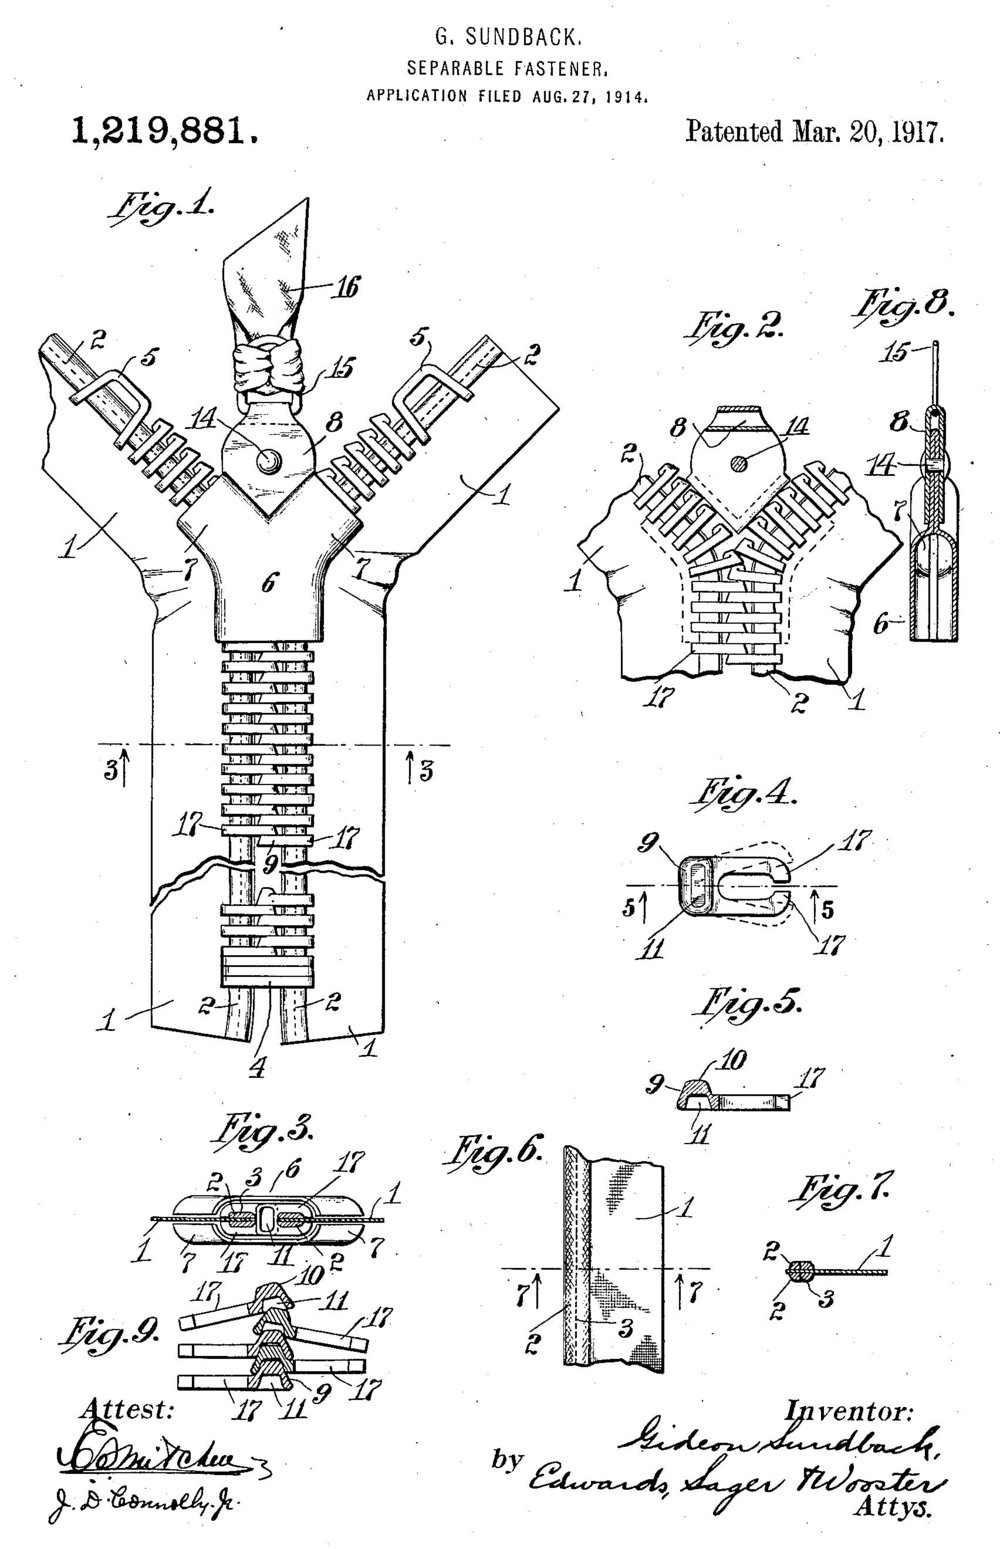 WHITCOMB'S EARLY ZIPPER PATENT